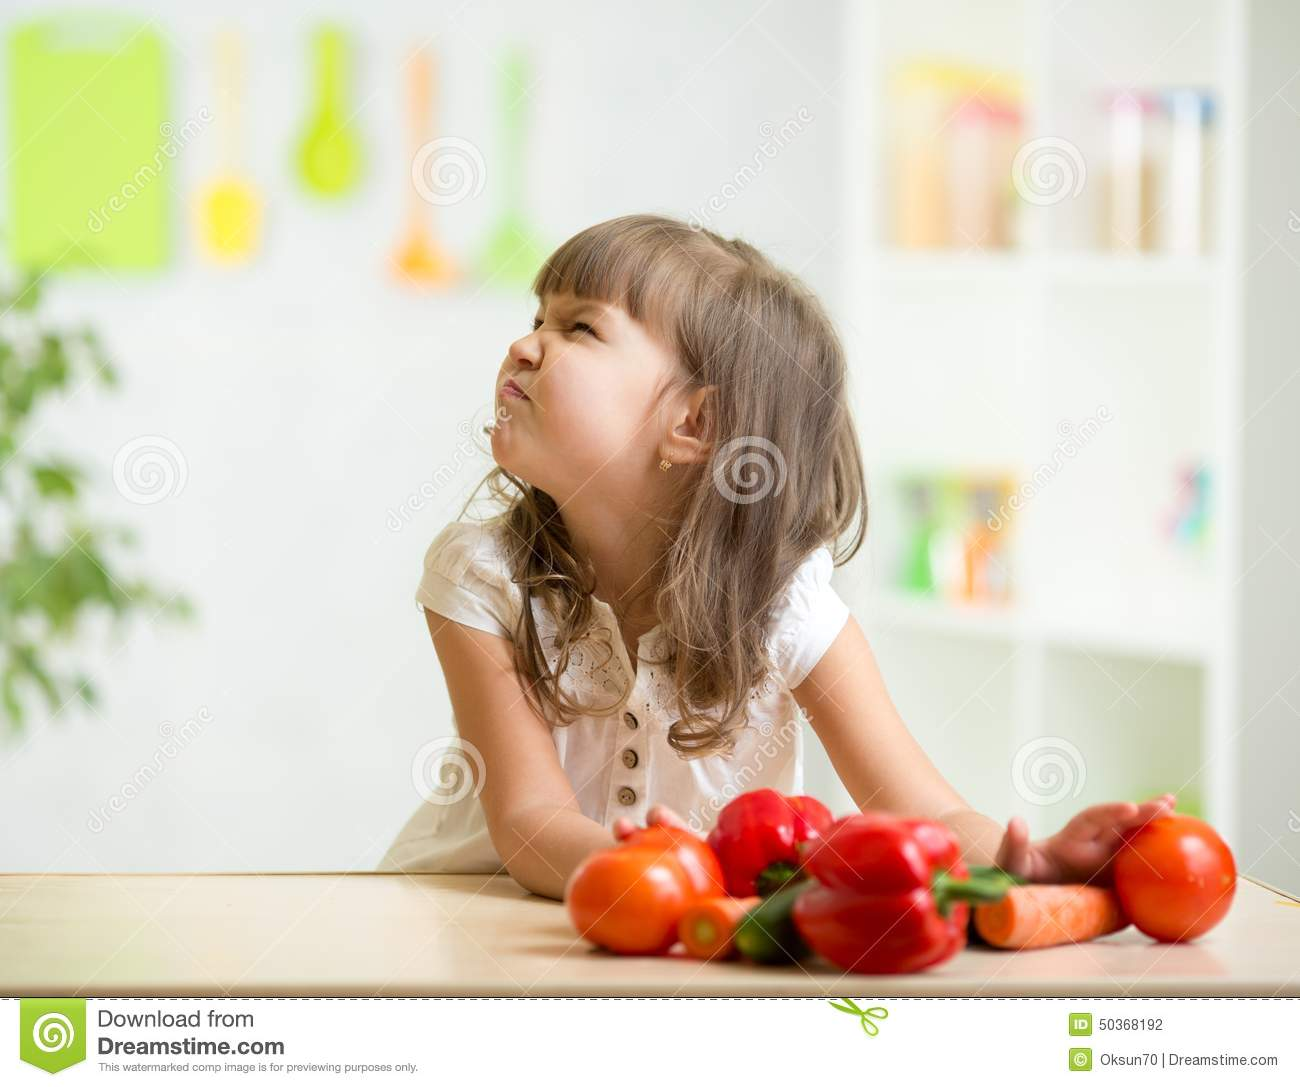 kid girl with expression of disgust against stock photo